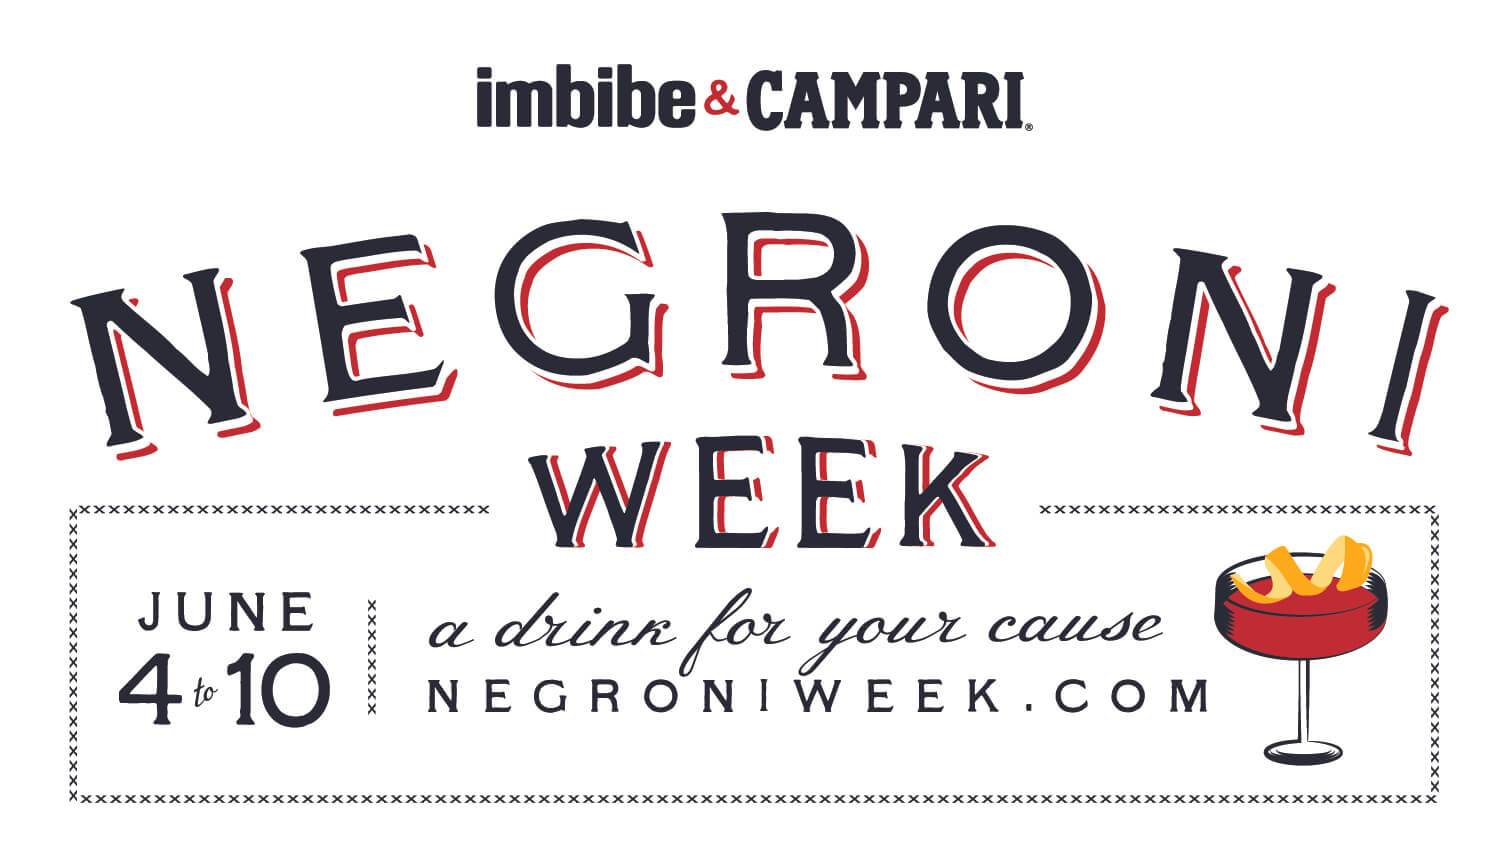 NegroniWeek2018_Horiz_LIGHT-color